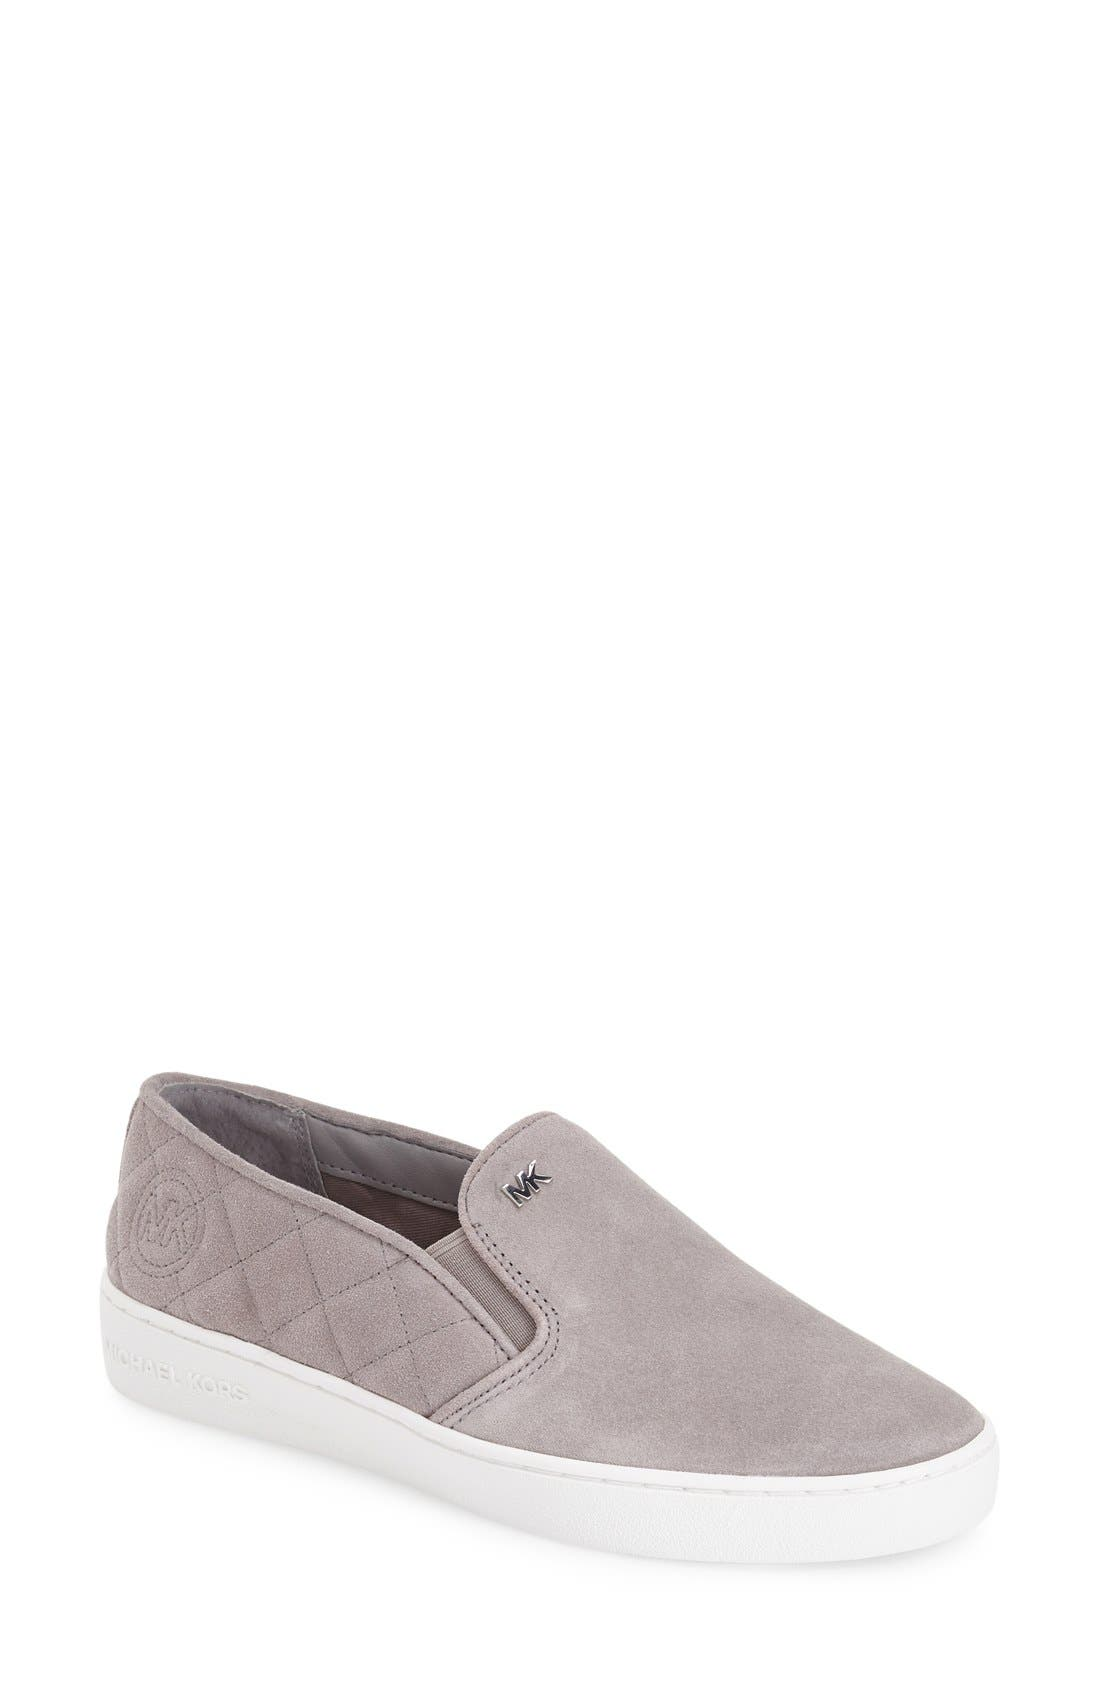 Keaton Slip-On Sneaker,                             Main thumbnail 28, color,